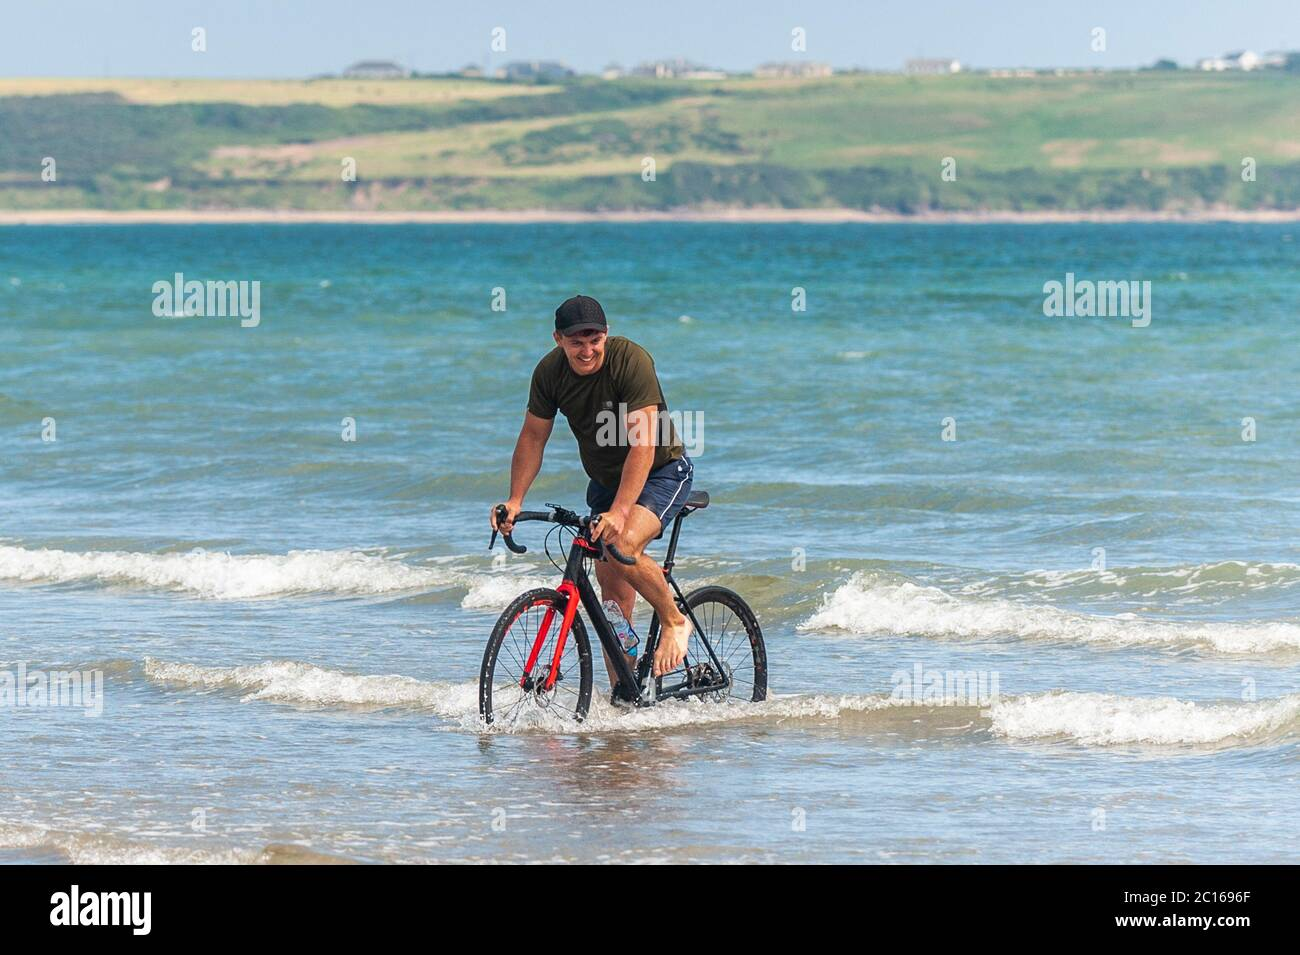 tramore-co-waterford-ireland-14th-june-2020-tramore-beach-was-busy-today-on-a-gloriously-sunny-day-with-highs-of-18-to-23-celsius-a-man-rides-his-bike-into-the-sea-to-cool-off-credit-ag-newsalamy-live-news-2C1696F.jpg